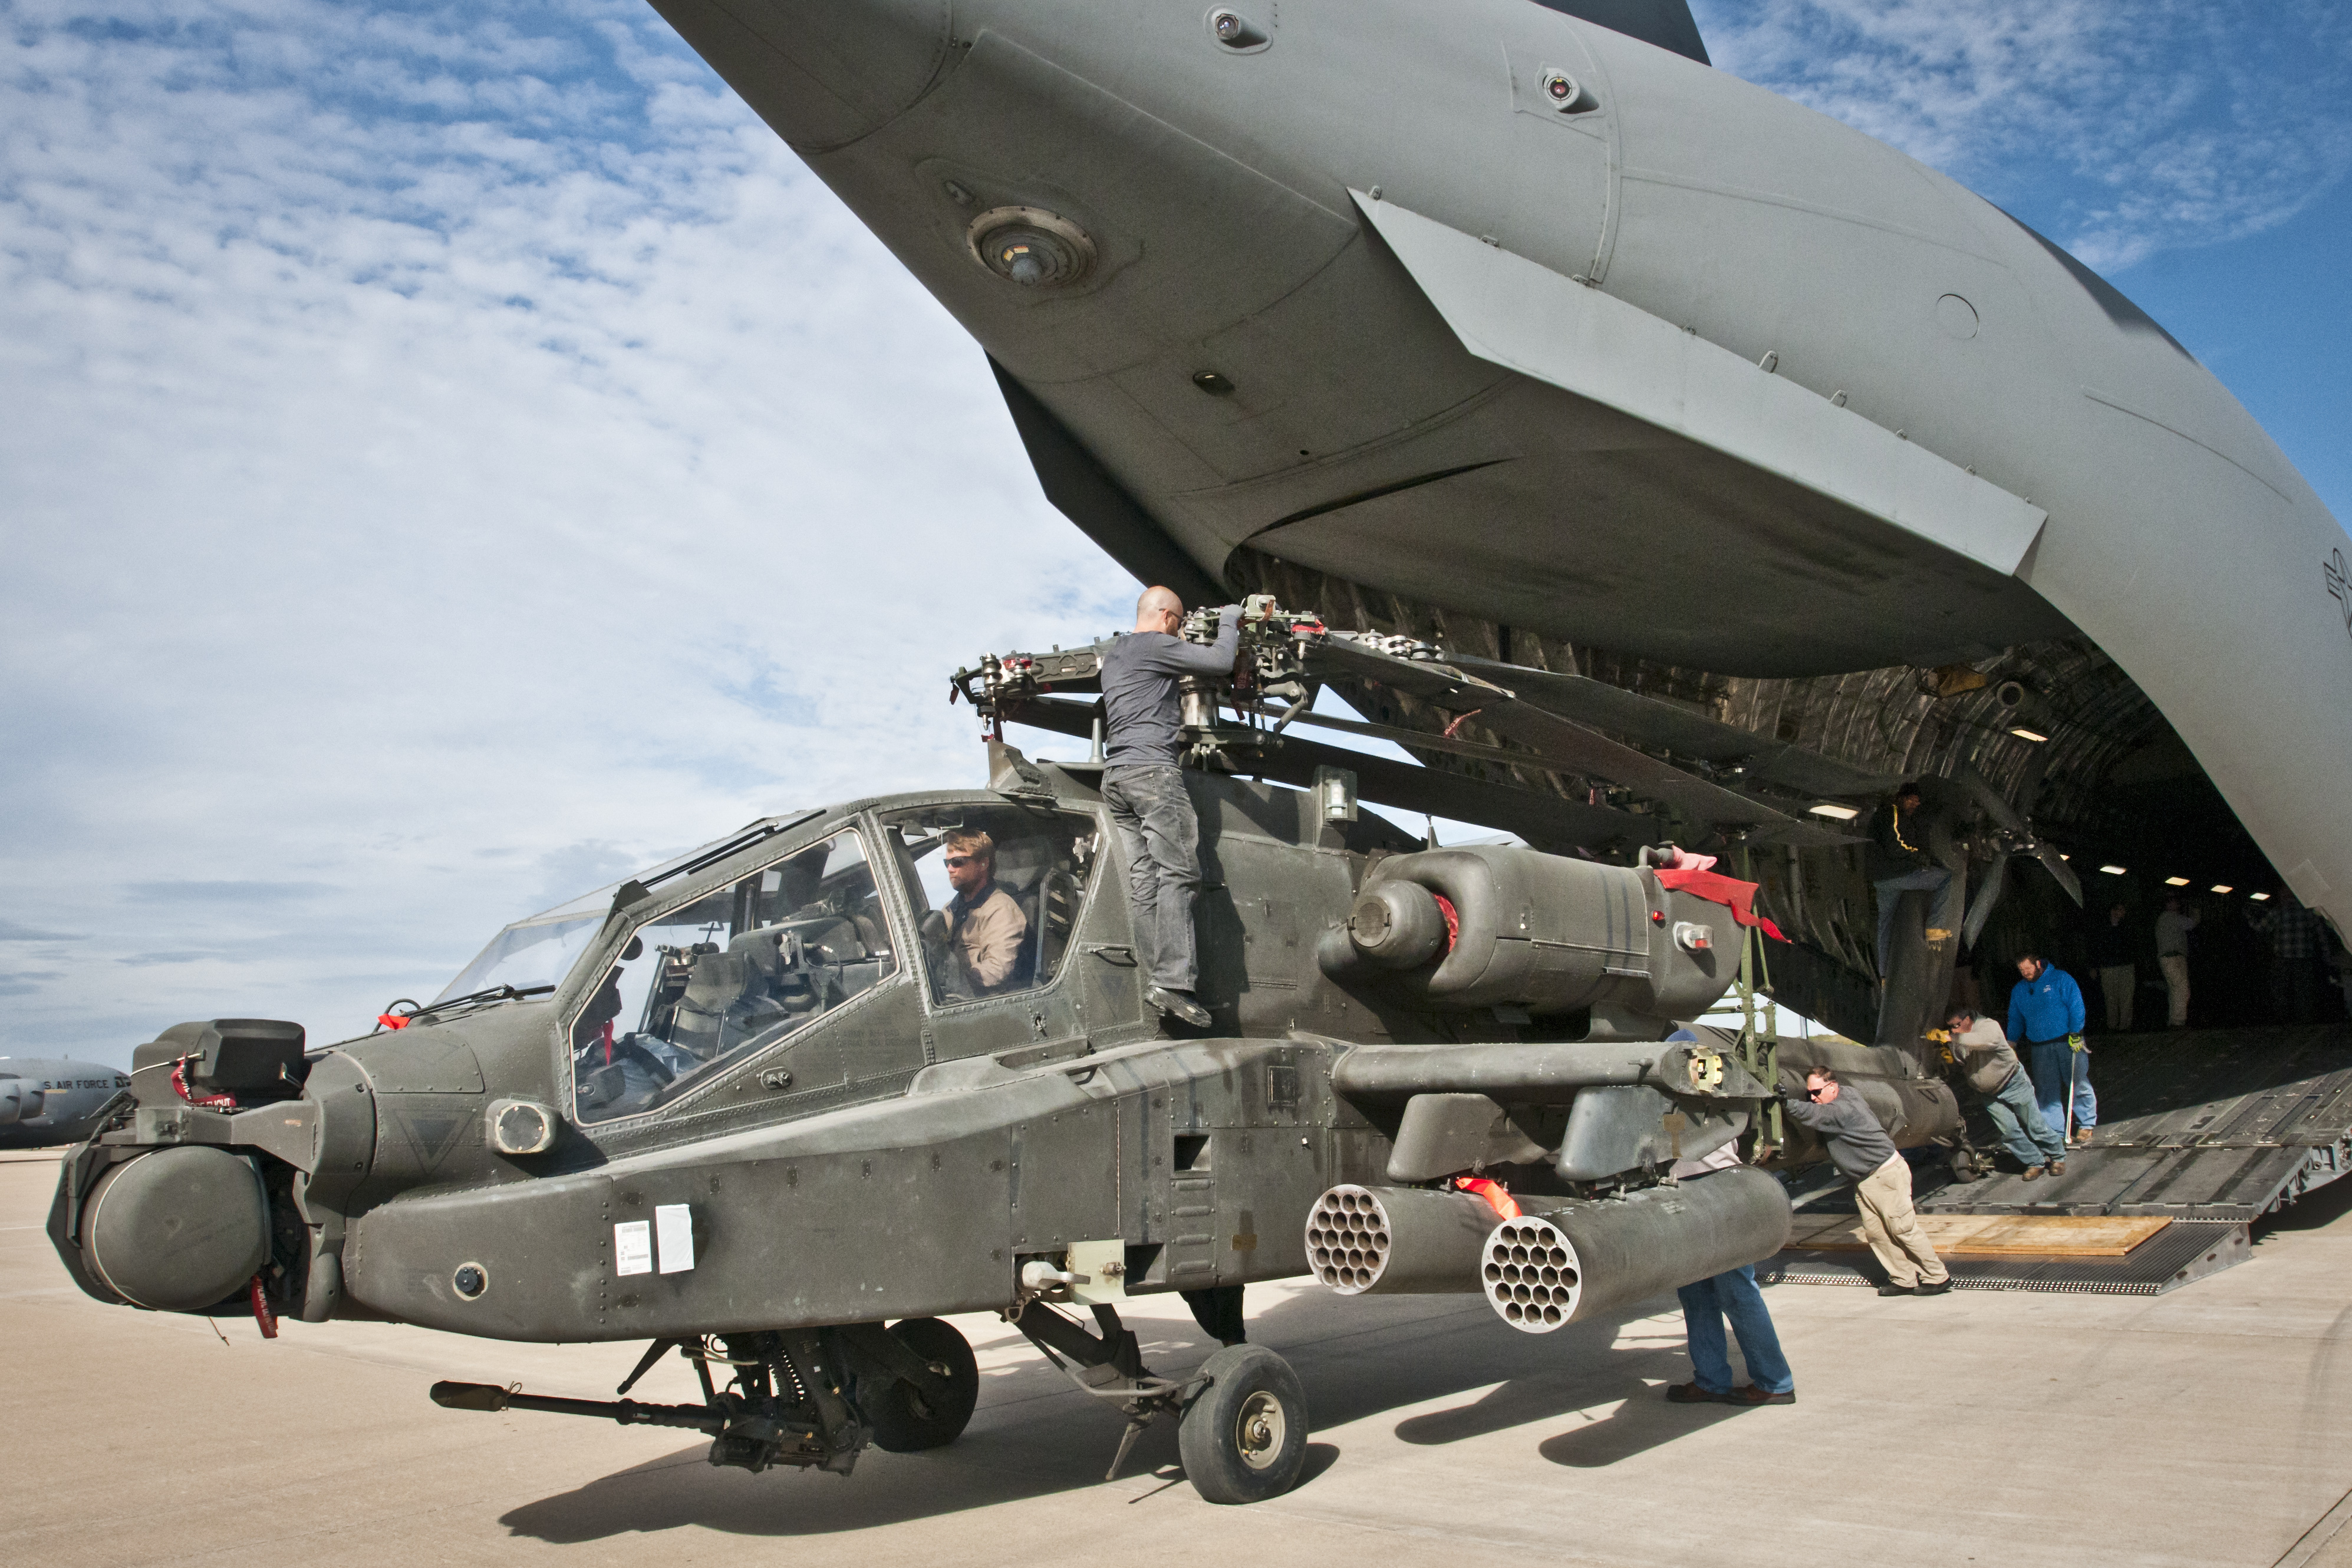 army helicopters with File Members Of The Fort Hood Arrival Departure Airfield Control Group And Civilian Contractors Unload An Ah 64d Apache Helicopter From A C 17 Globemaster Aircraft At Robert Gray Airfield  Fort Hood  Texas  Nov  15 131115 A Zu930 021 on Boeing Wins Fms Contract Supply Ah 6is Saudi Arabia furthermore Connex together with 8901 moreover  as well File Members of the Fort Hood Arrival Departure Airfield Control Group and civilian contractors unload an AH 64D Apache helicopter from a C 17 Globemaster aircraft at Robert Gray Airfield  Fort Hood  Texas  Nov  15 131115 A ZU930 021.